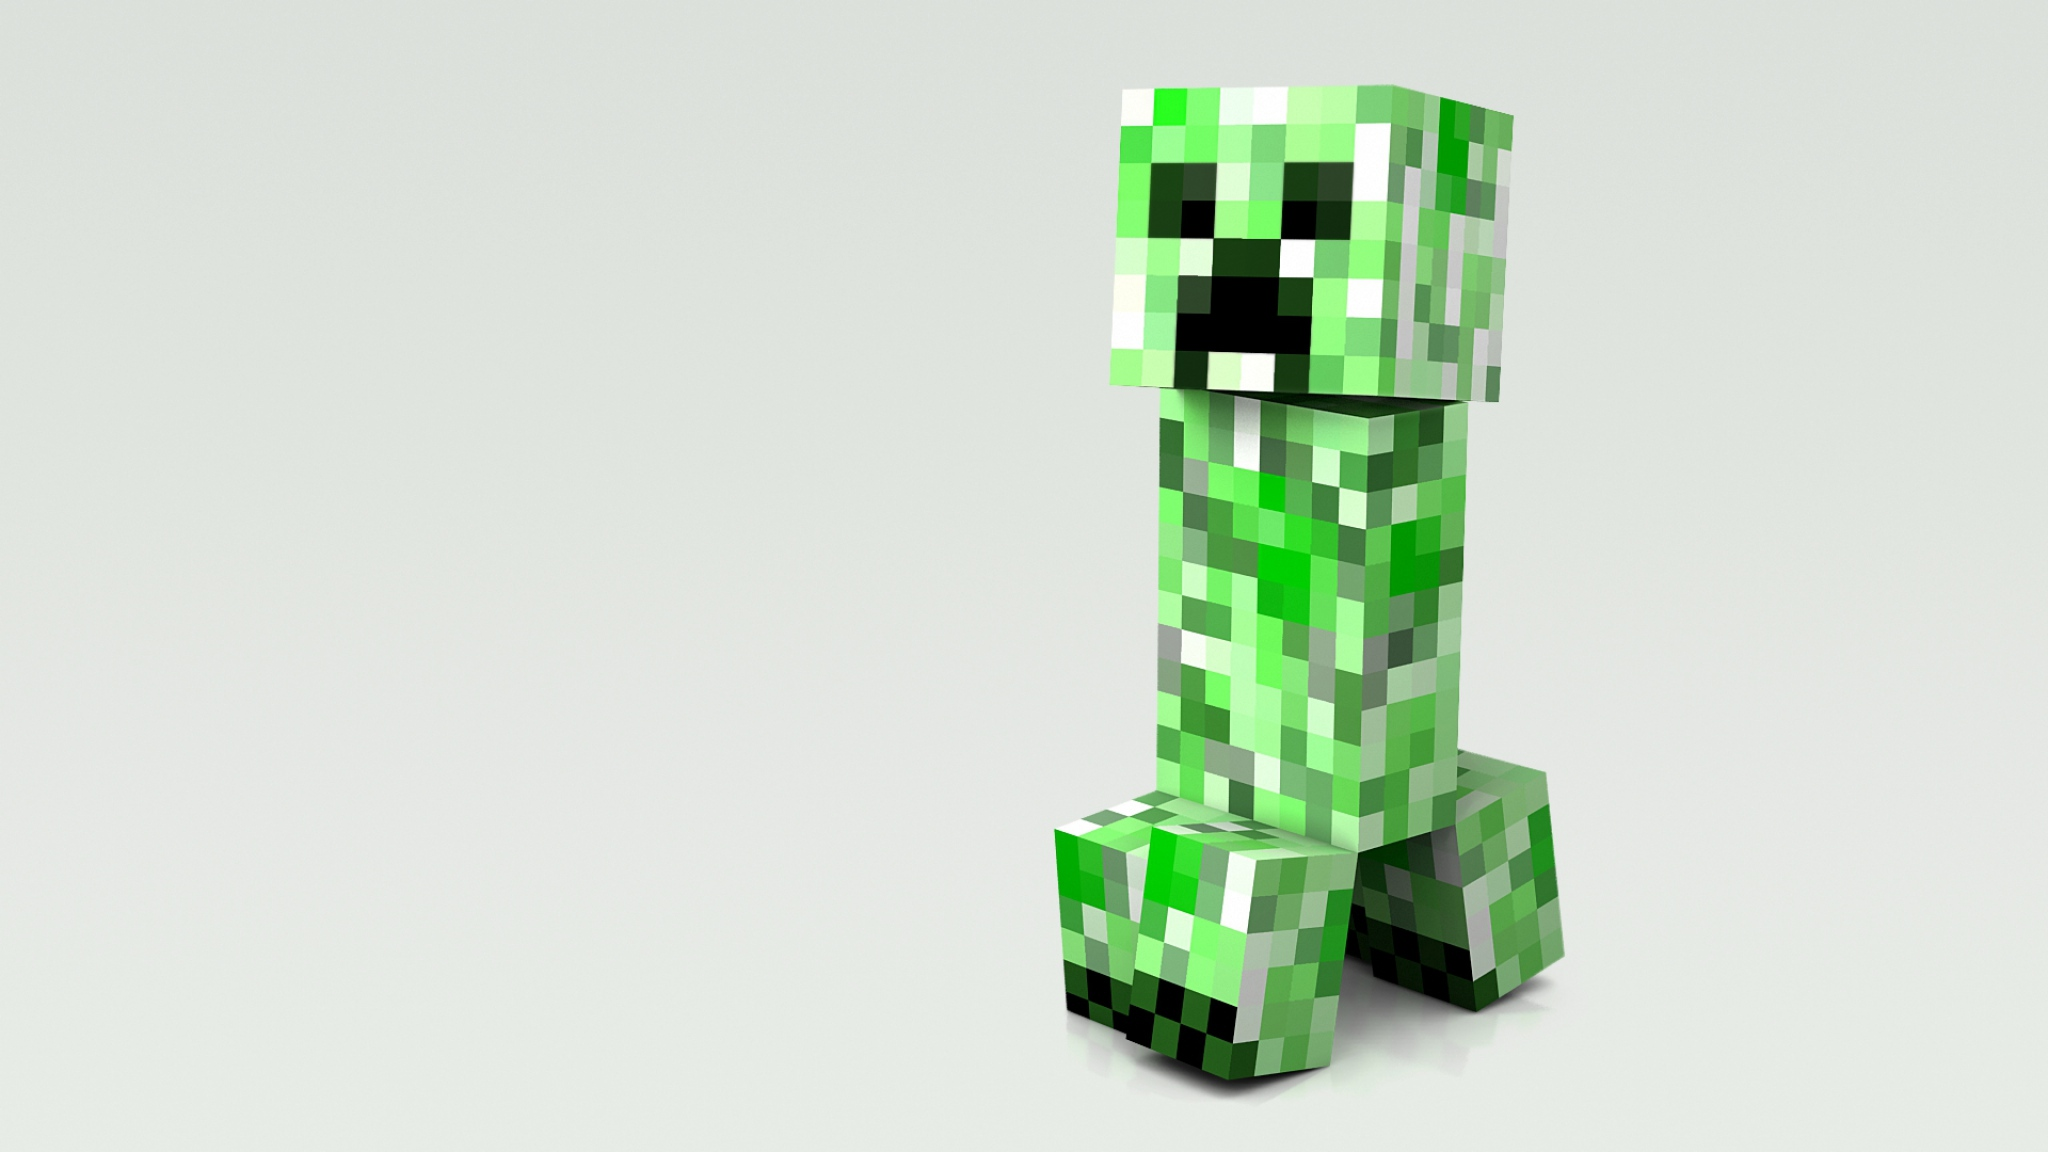 Download Wallpaper 2048x1152 Minecraft Cubes People Man HD HD 2048x1152